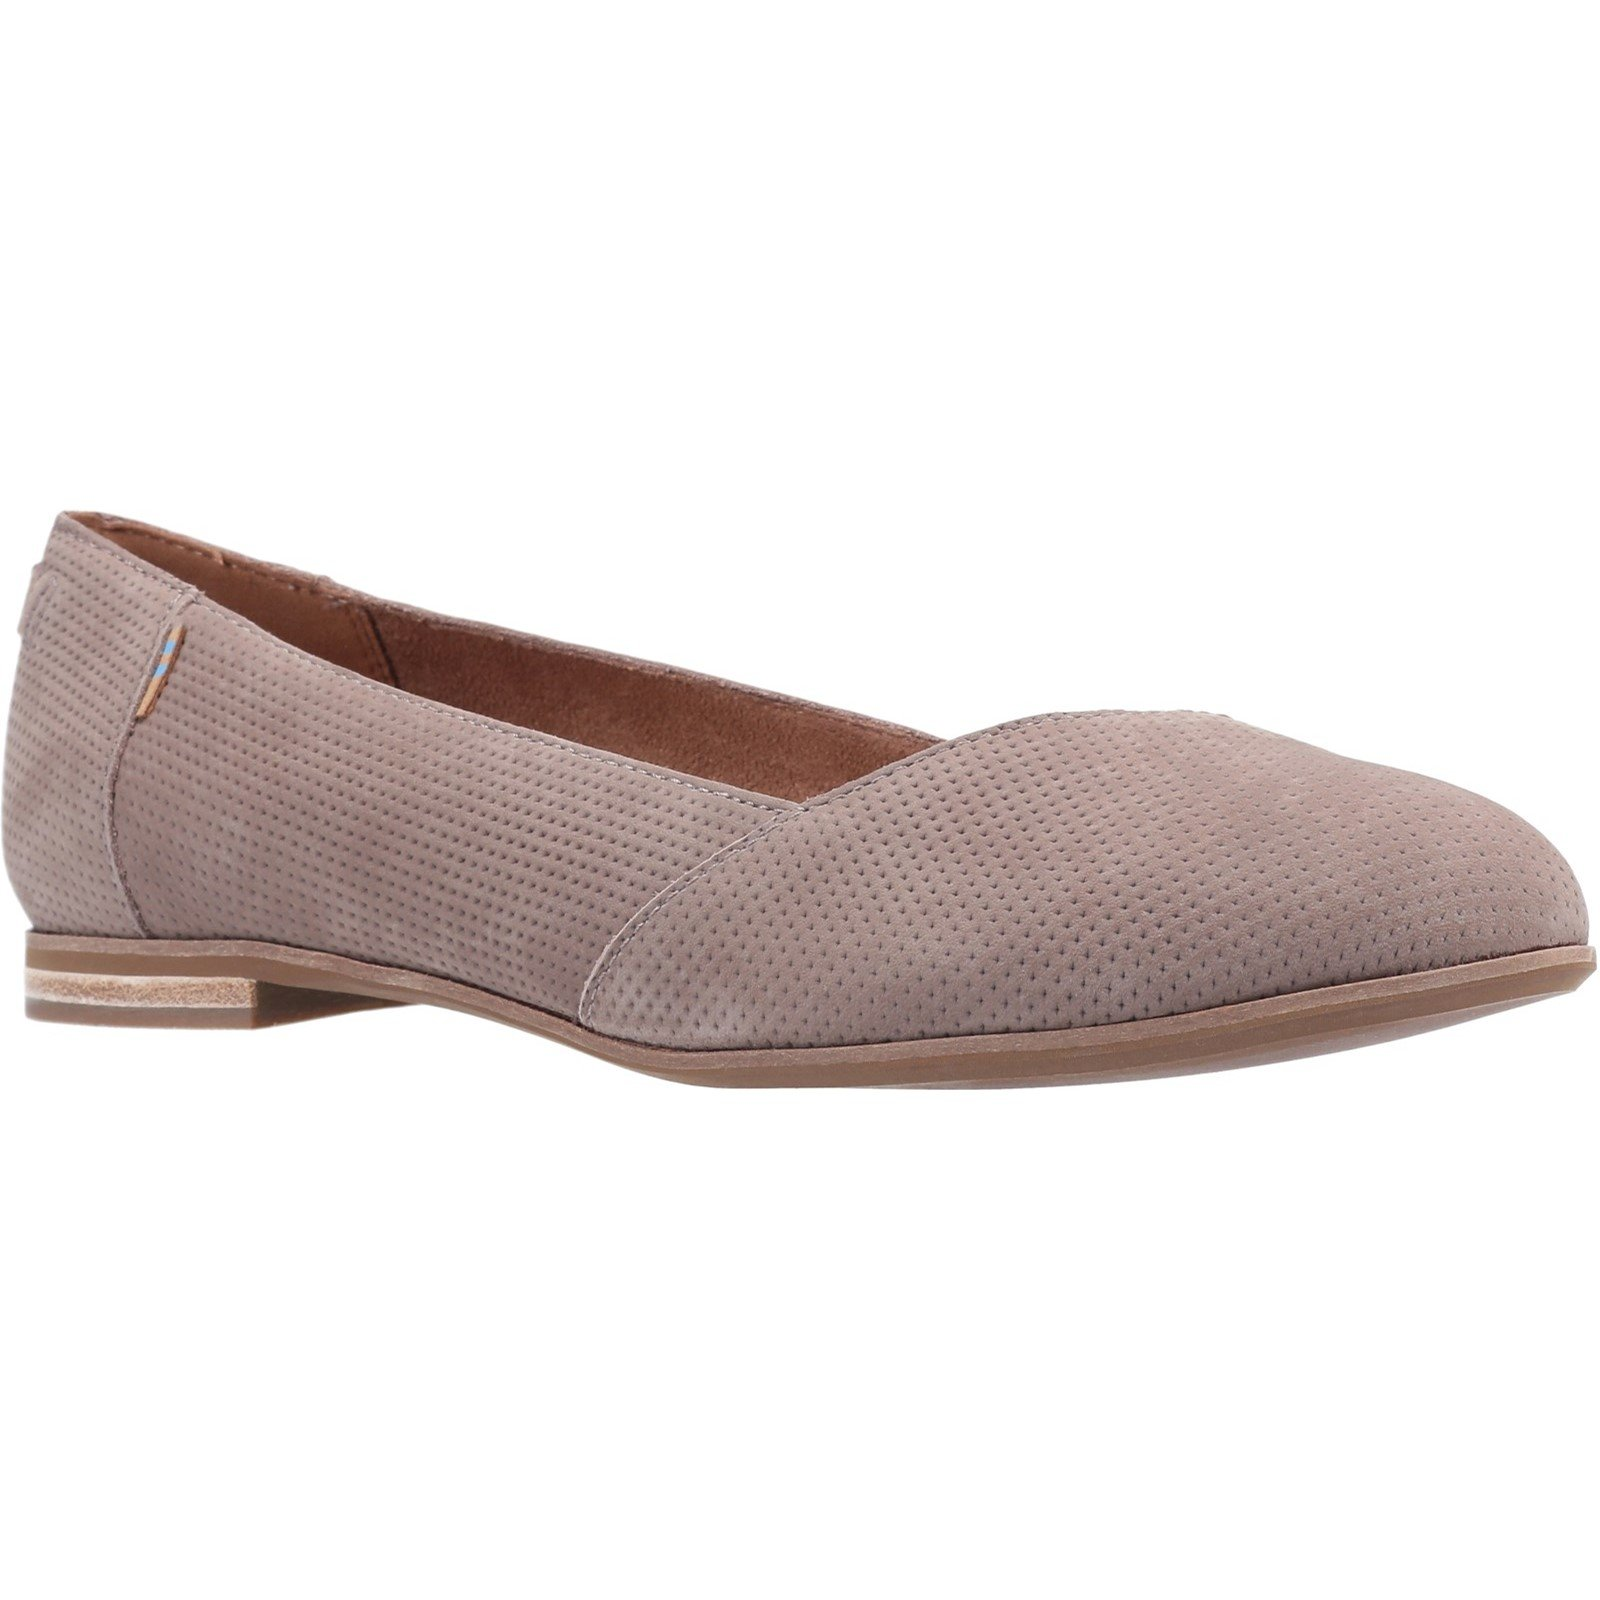 TOMS Women's Julie Flat Various Colours 31593 - Taupe Grey Suede/Perf 5